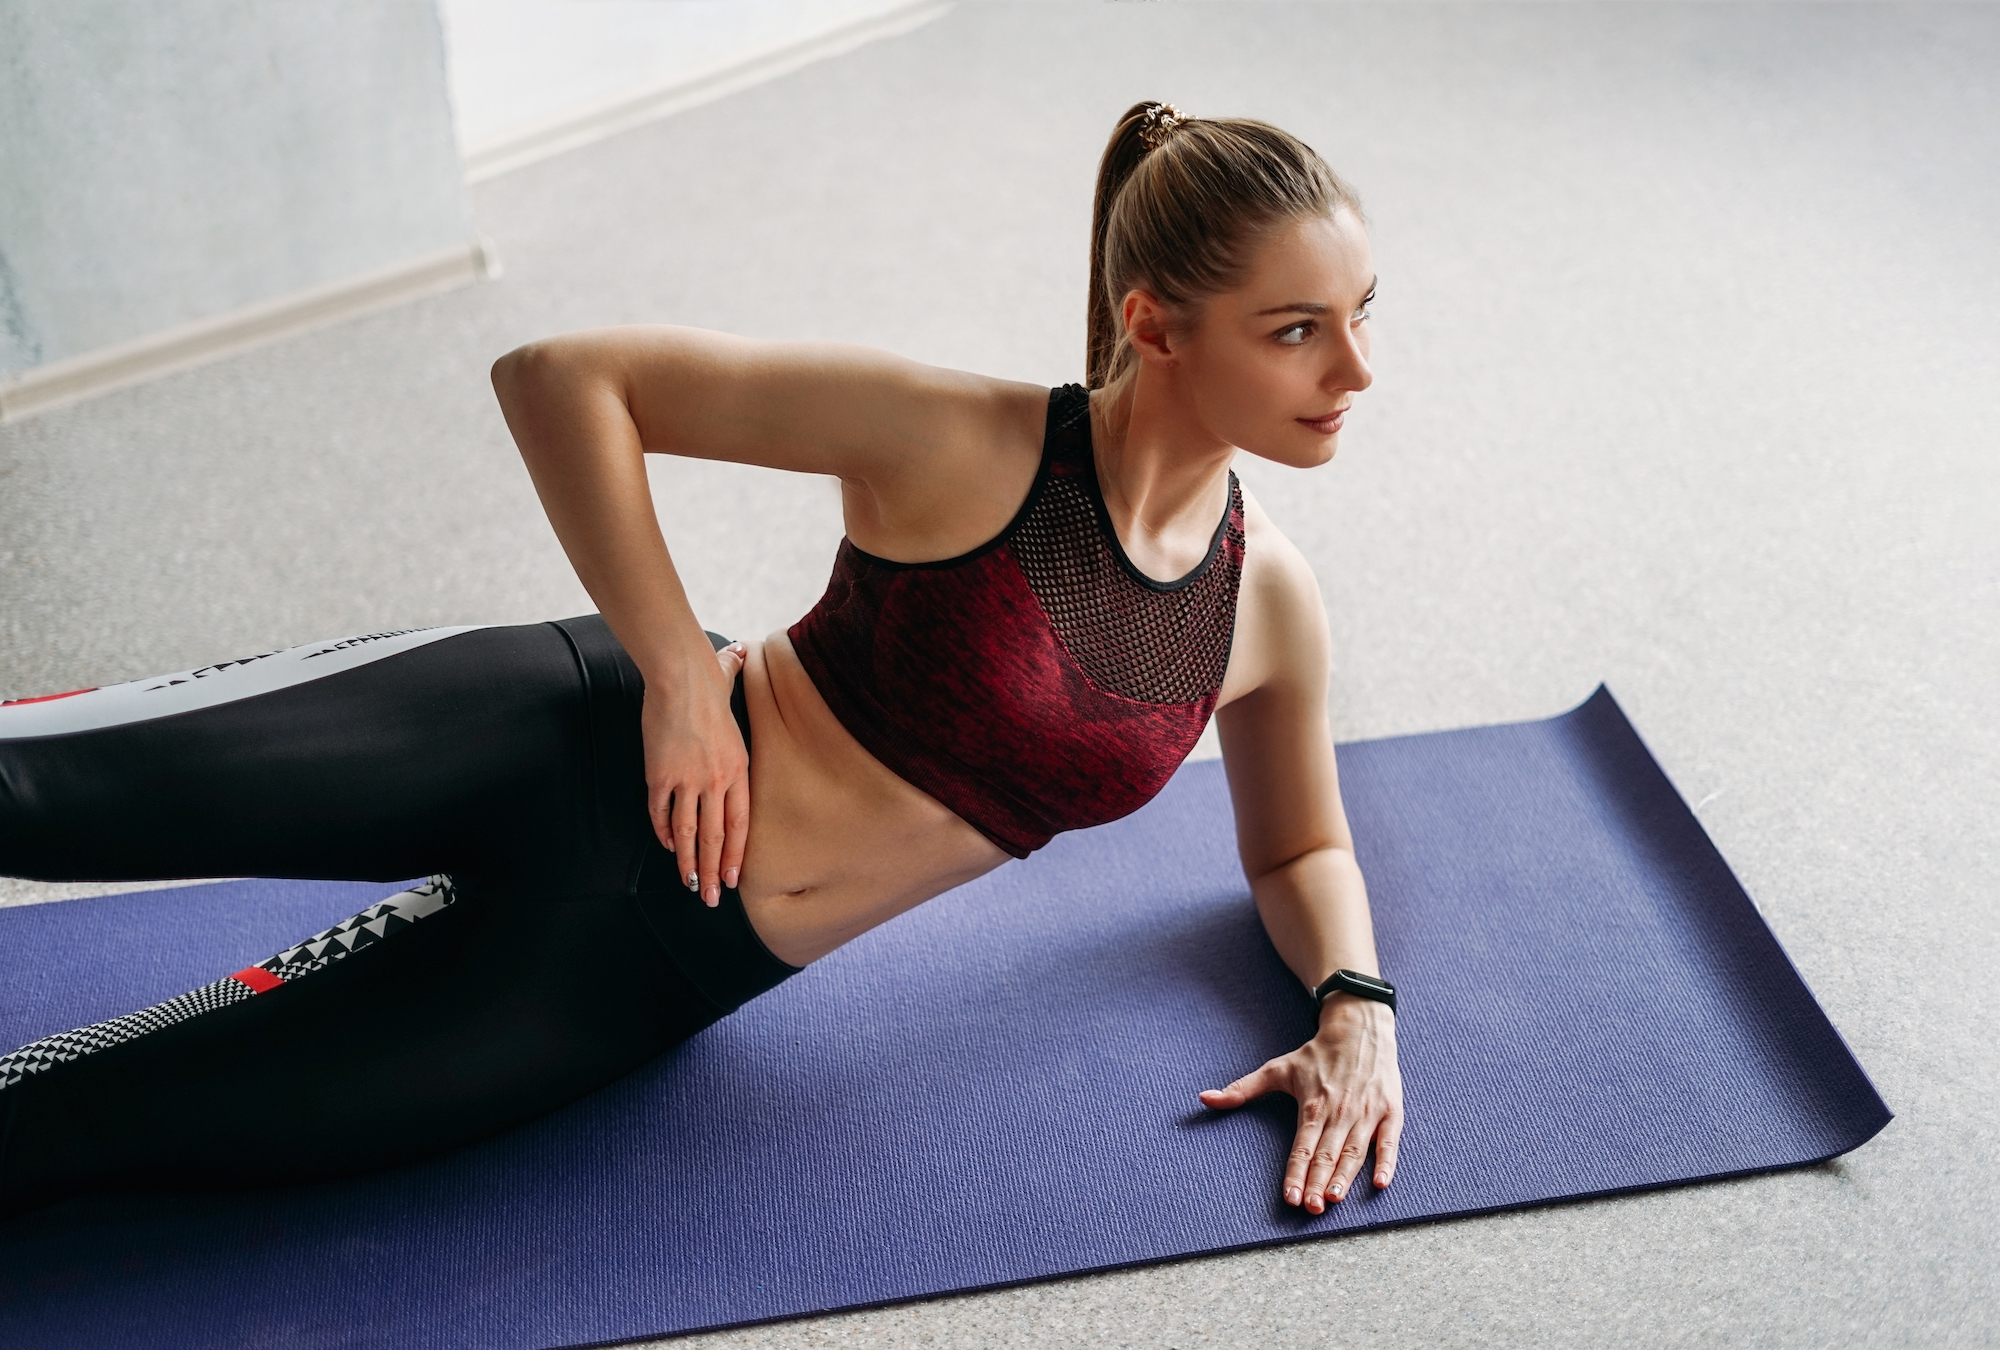 Attractive fit young woman sport wear fitness girl model doing stretching at home studio workout class